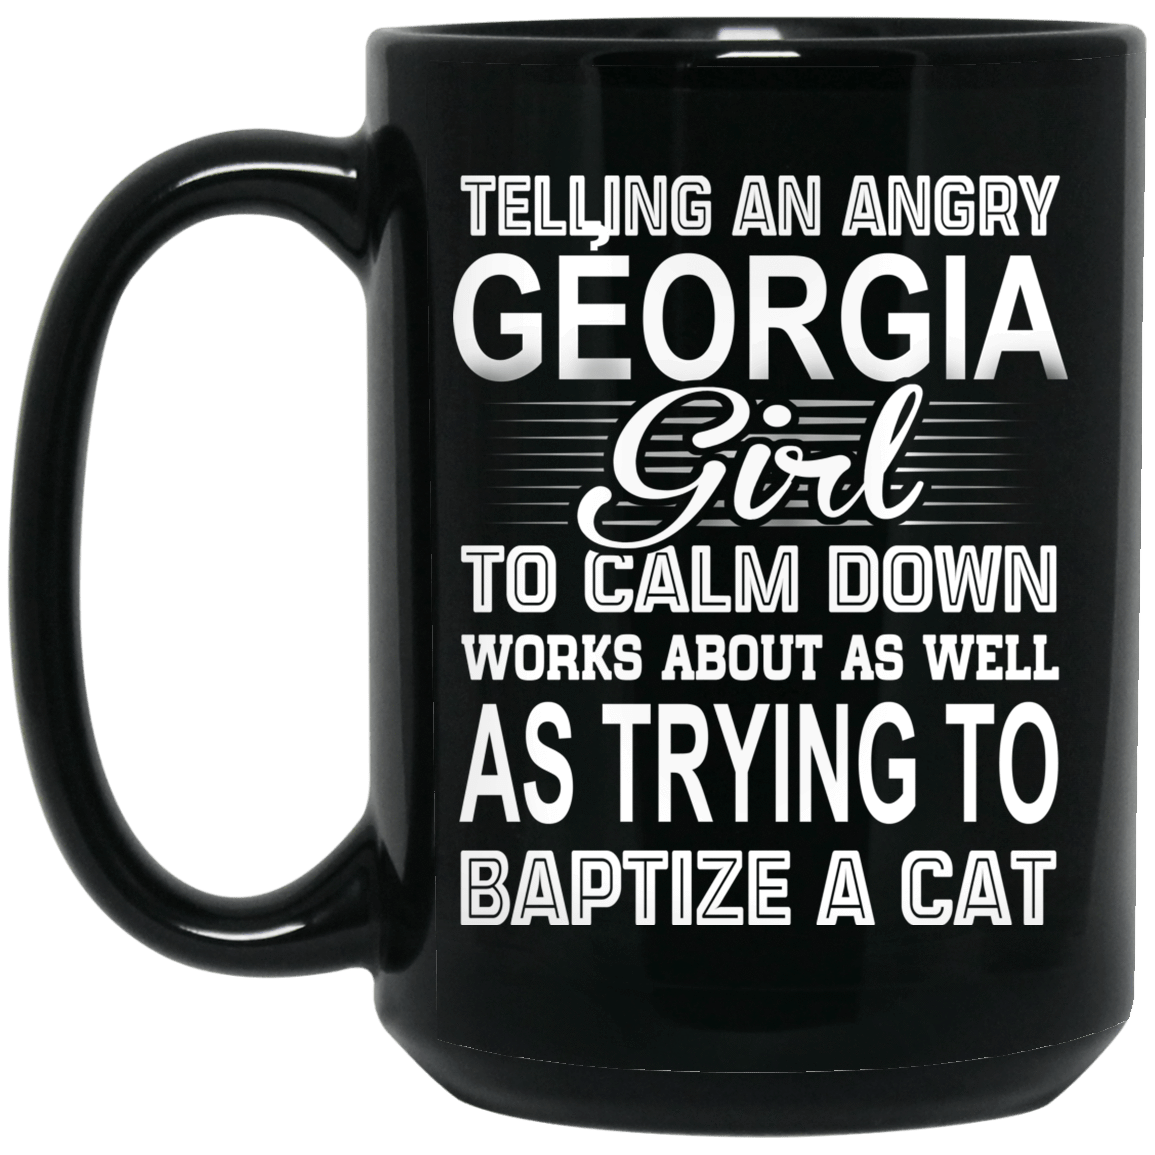 Telling An Angry Georgia Girl To Calm Down Works About As Well As Trying To Baptize A Cat Mug 1066-10182-76151652-49311 - Tee Ript